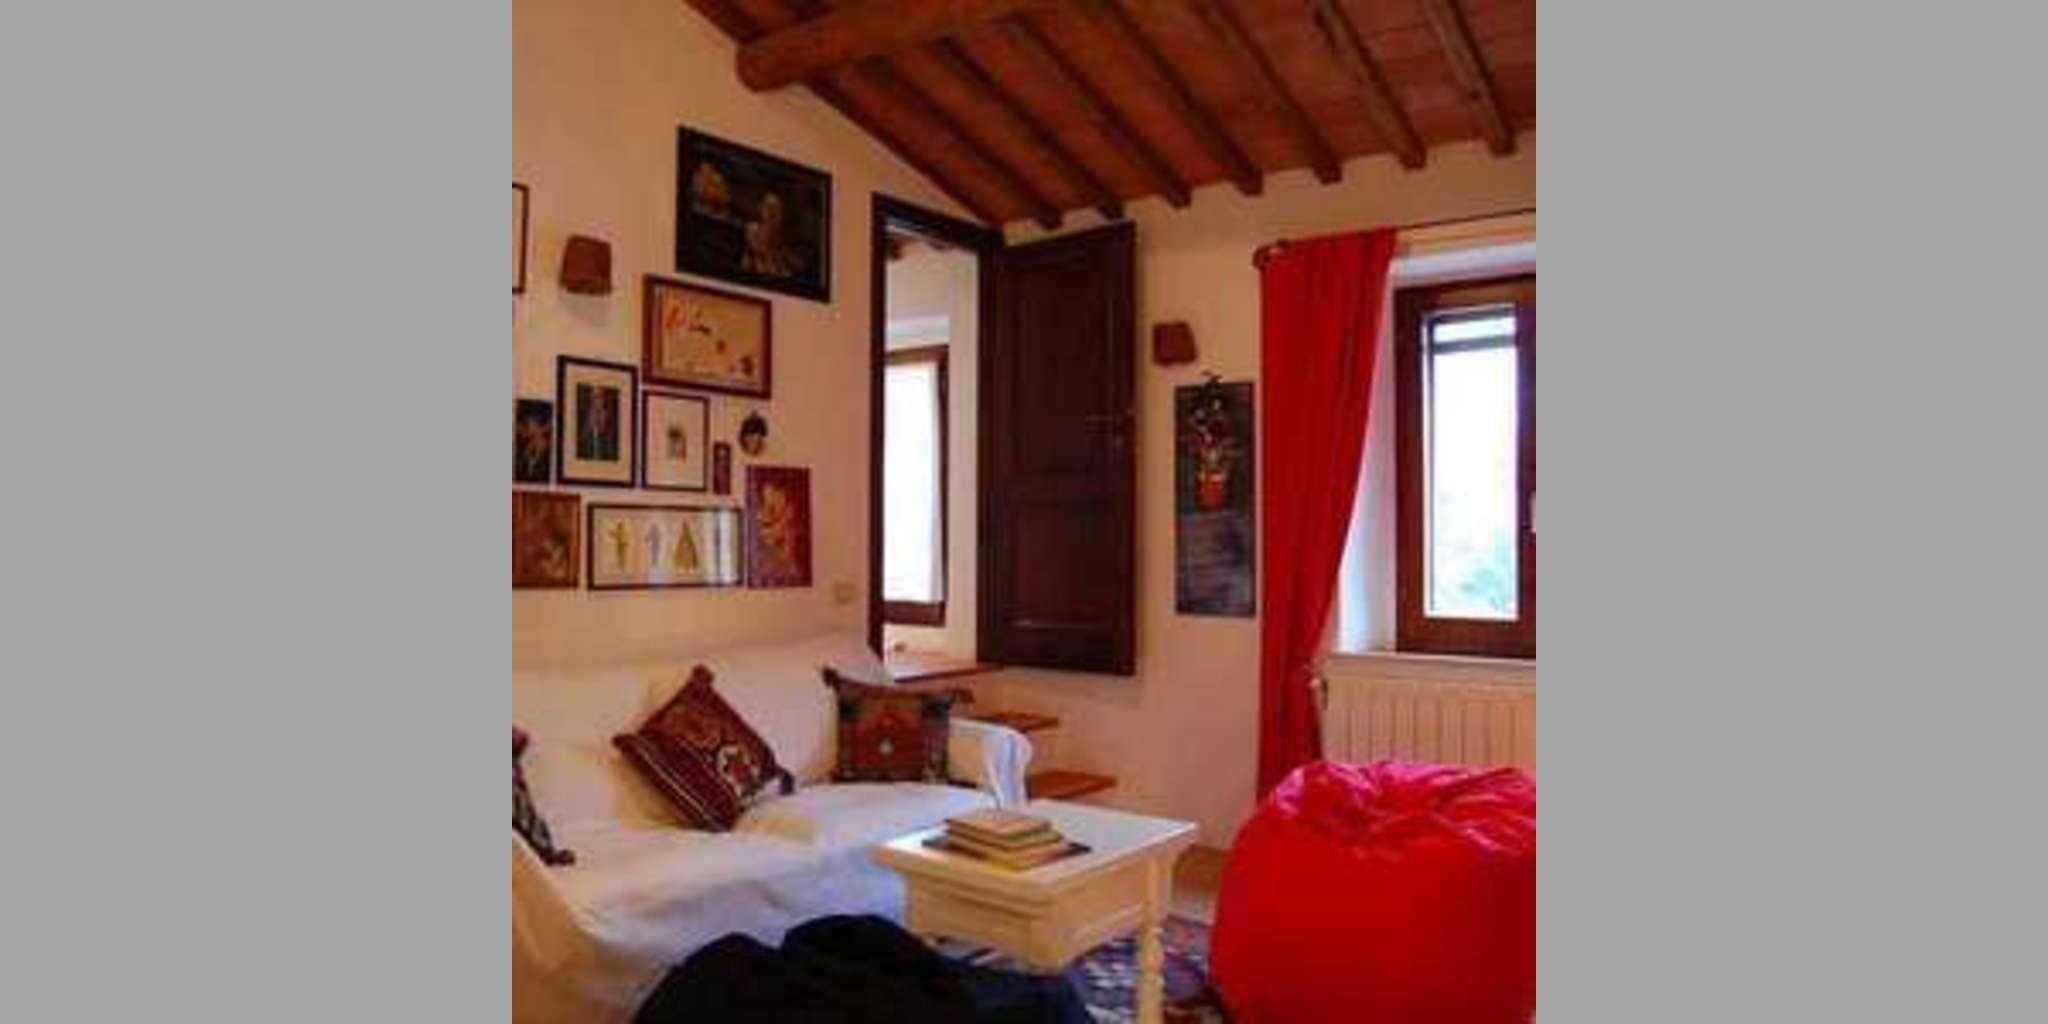 Apartment Manciano - Saturnia 2